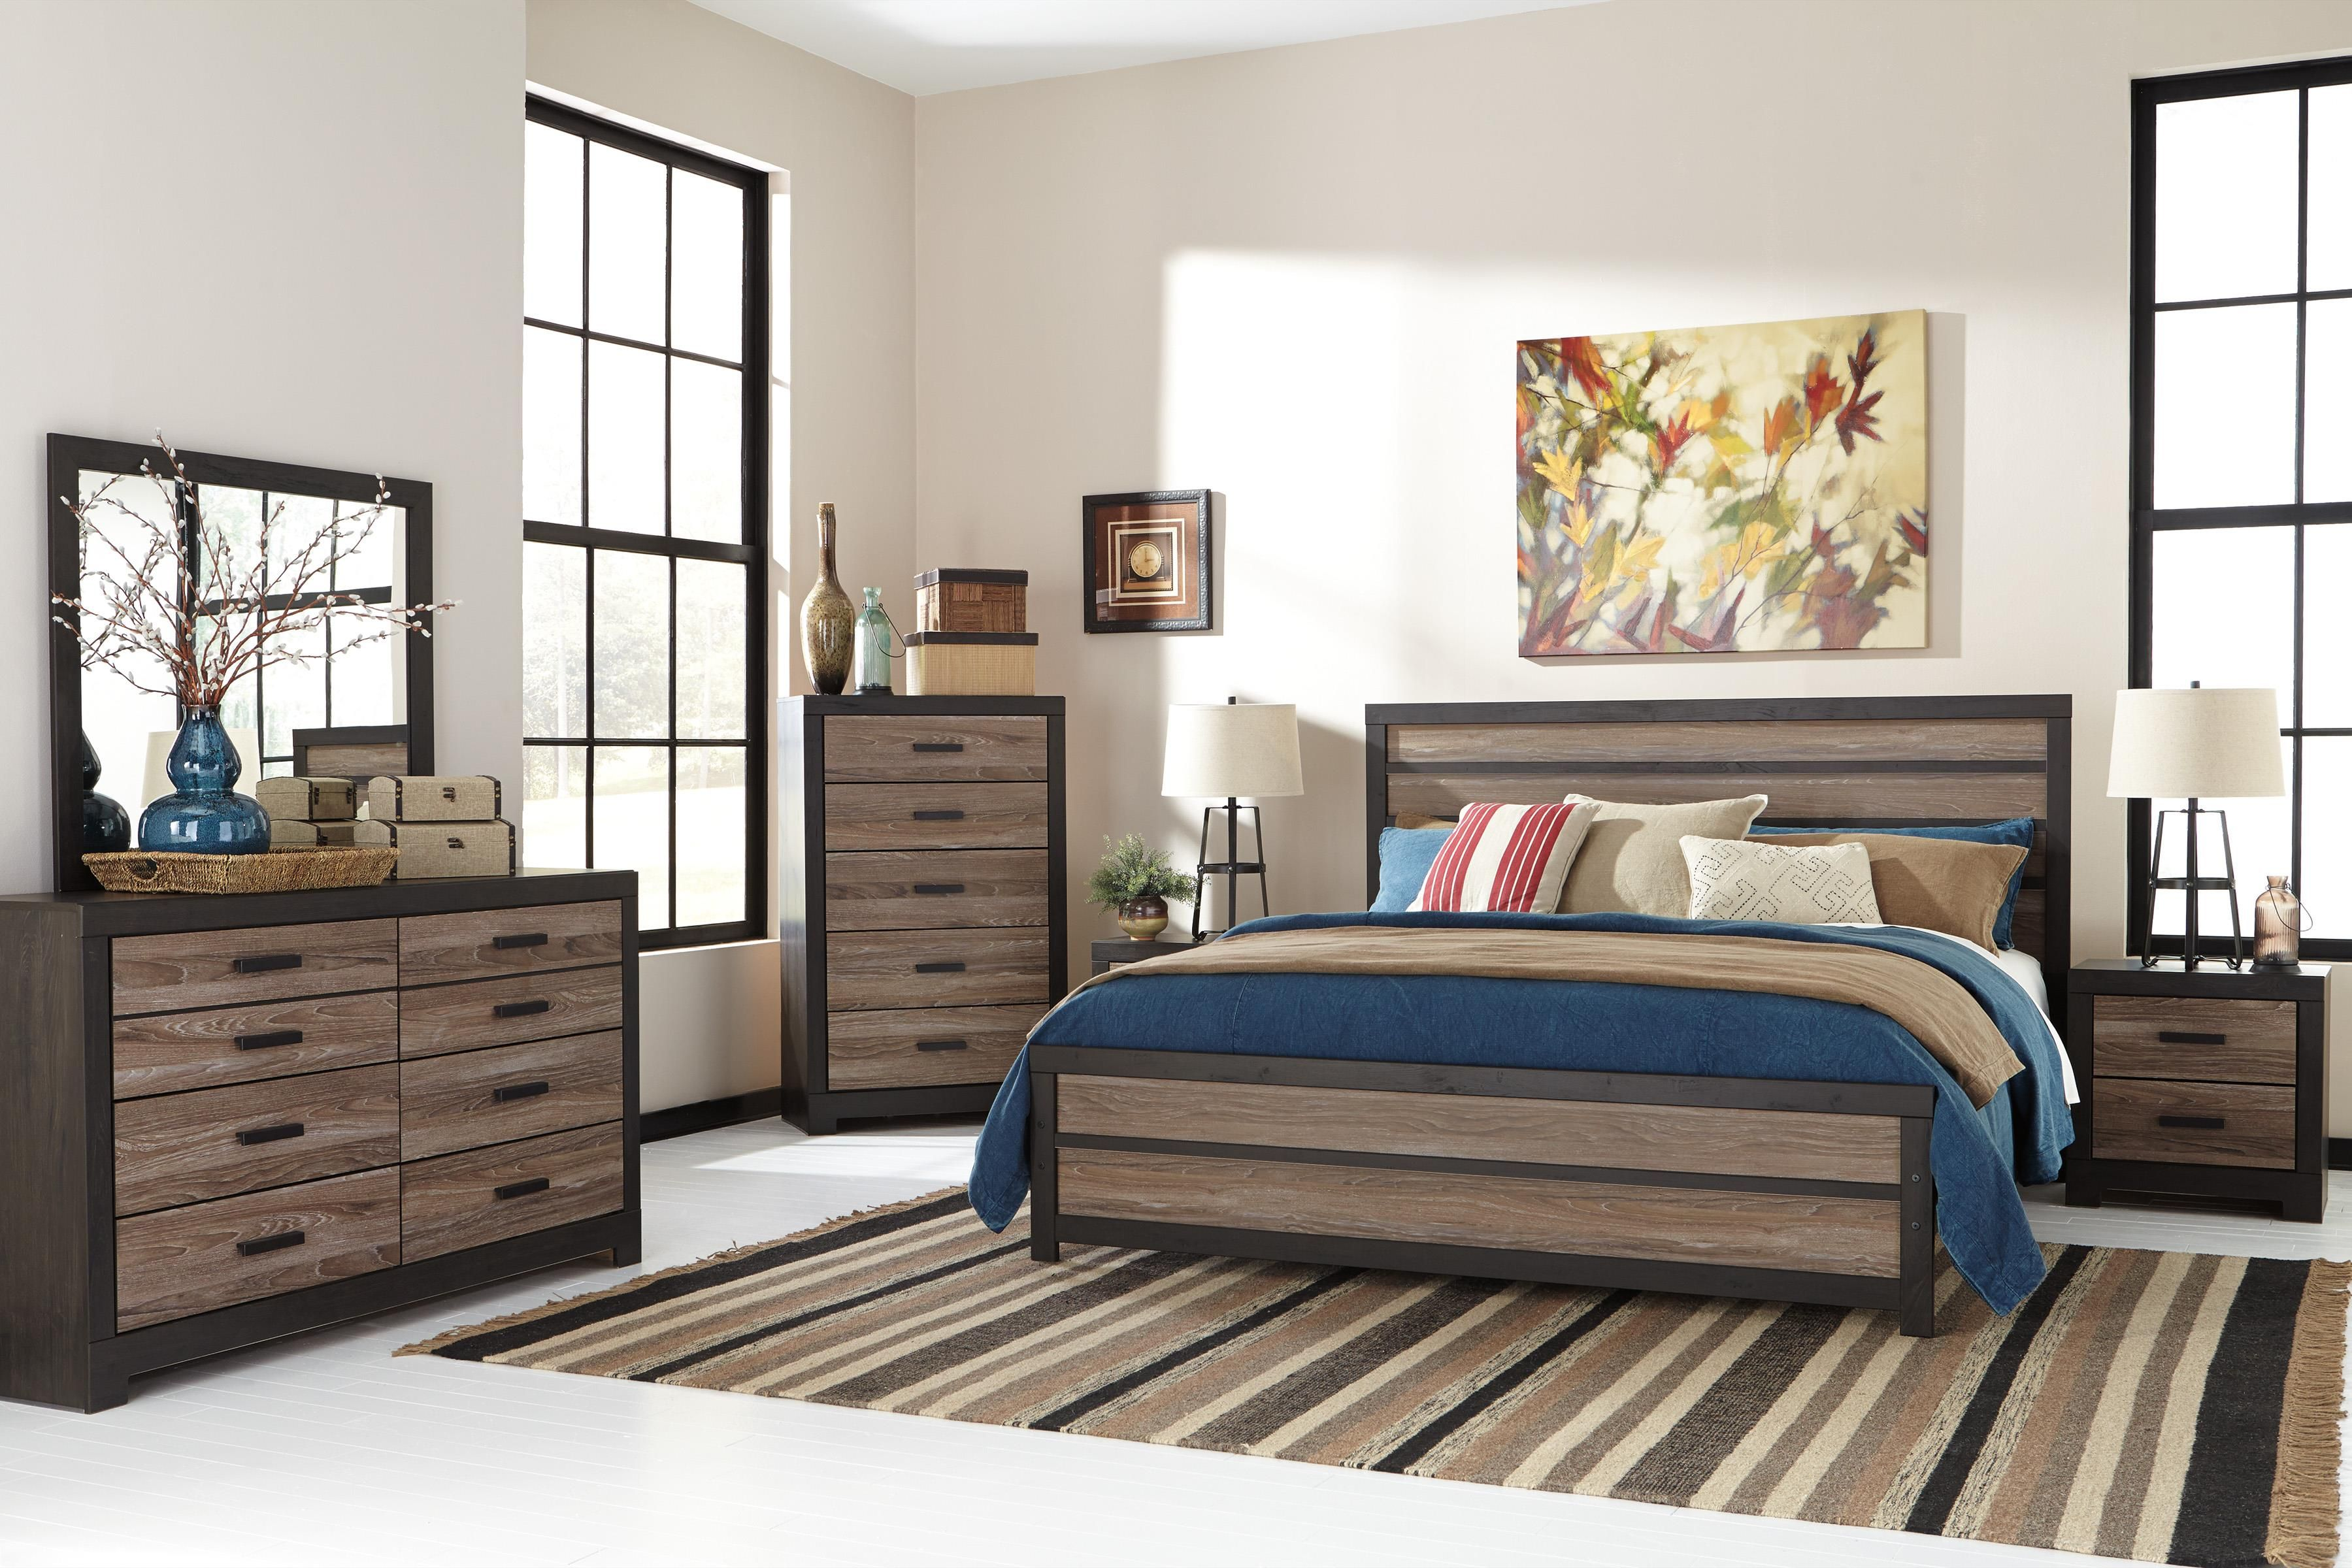 This 5pc bedroom package includes king bed dresser mirror chest nightstand